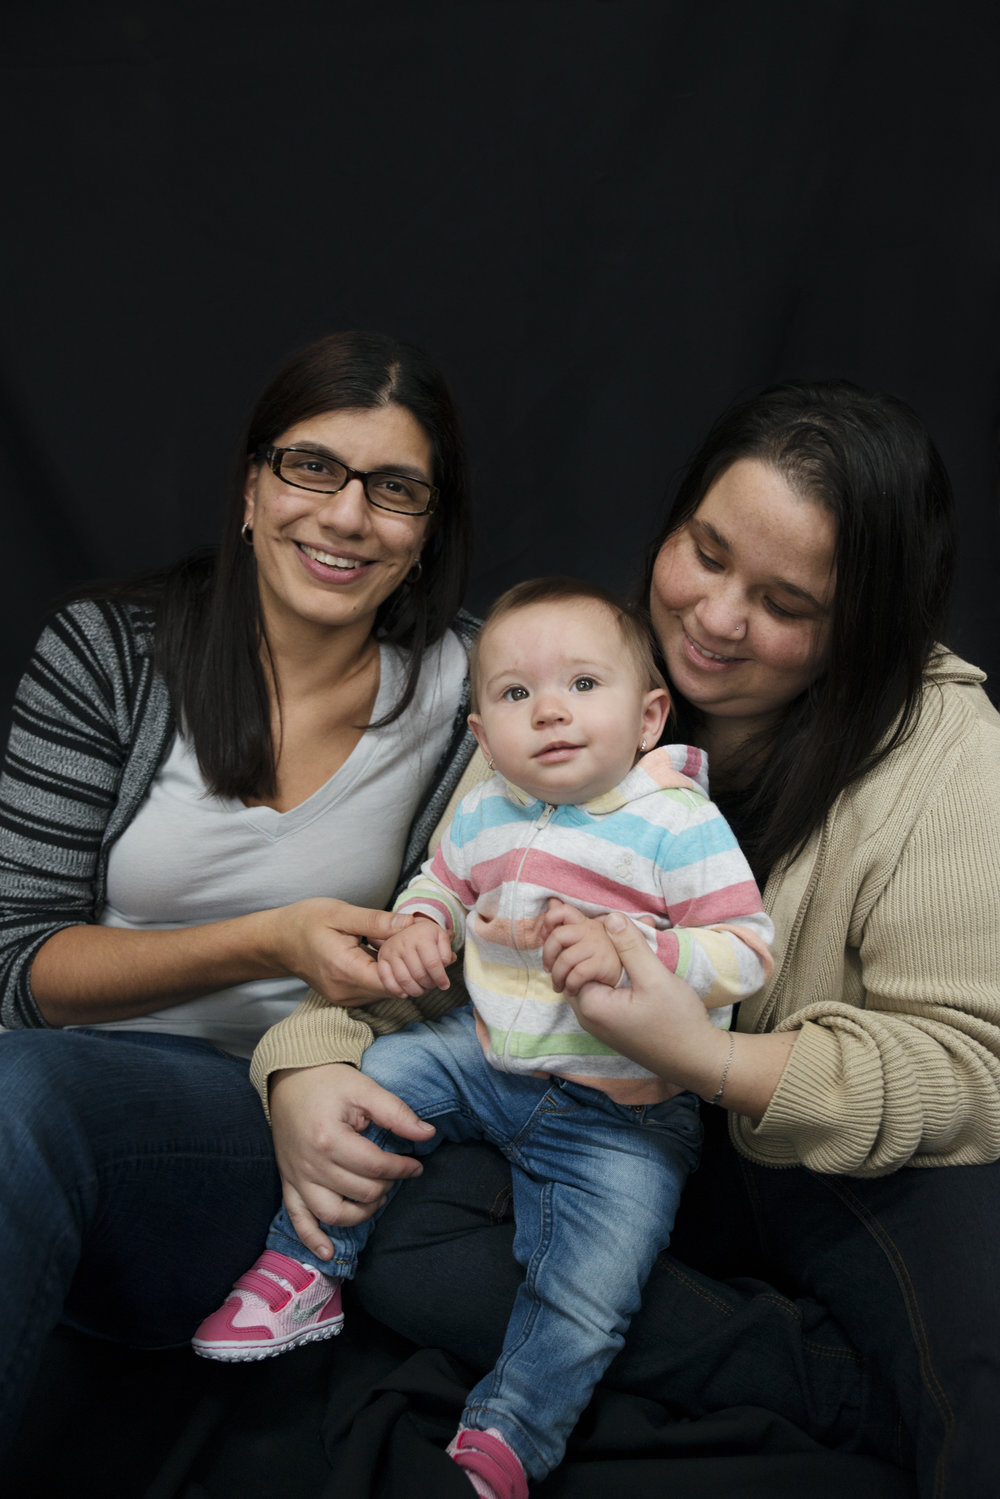 RosewoodWeddingPhotos-LGBT-Family-2Moms-Brampton-Family-FamilyPhotographer